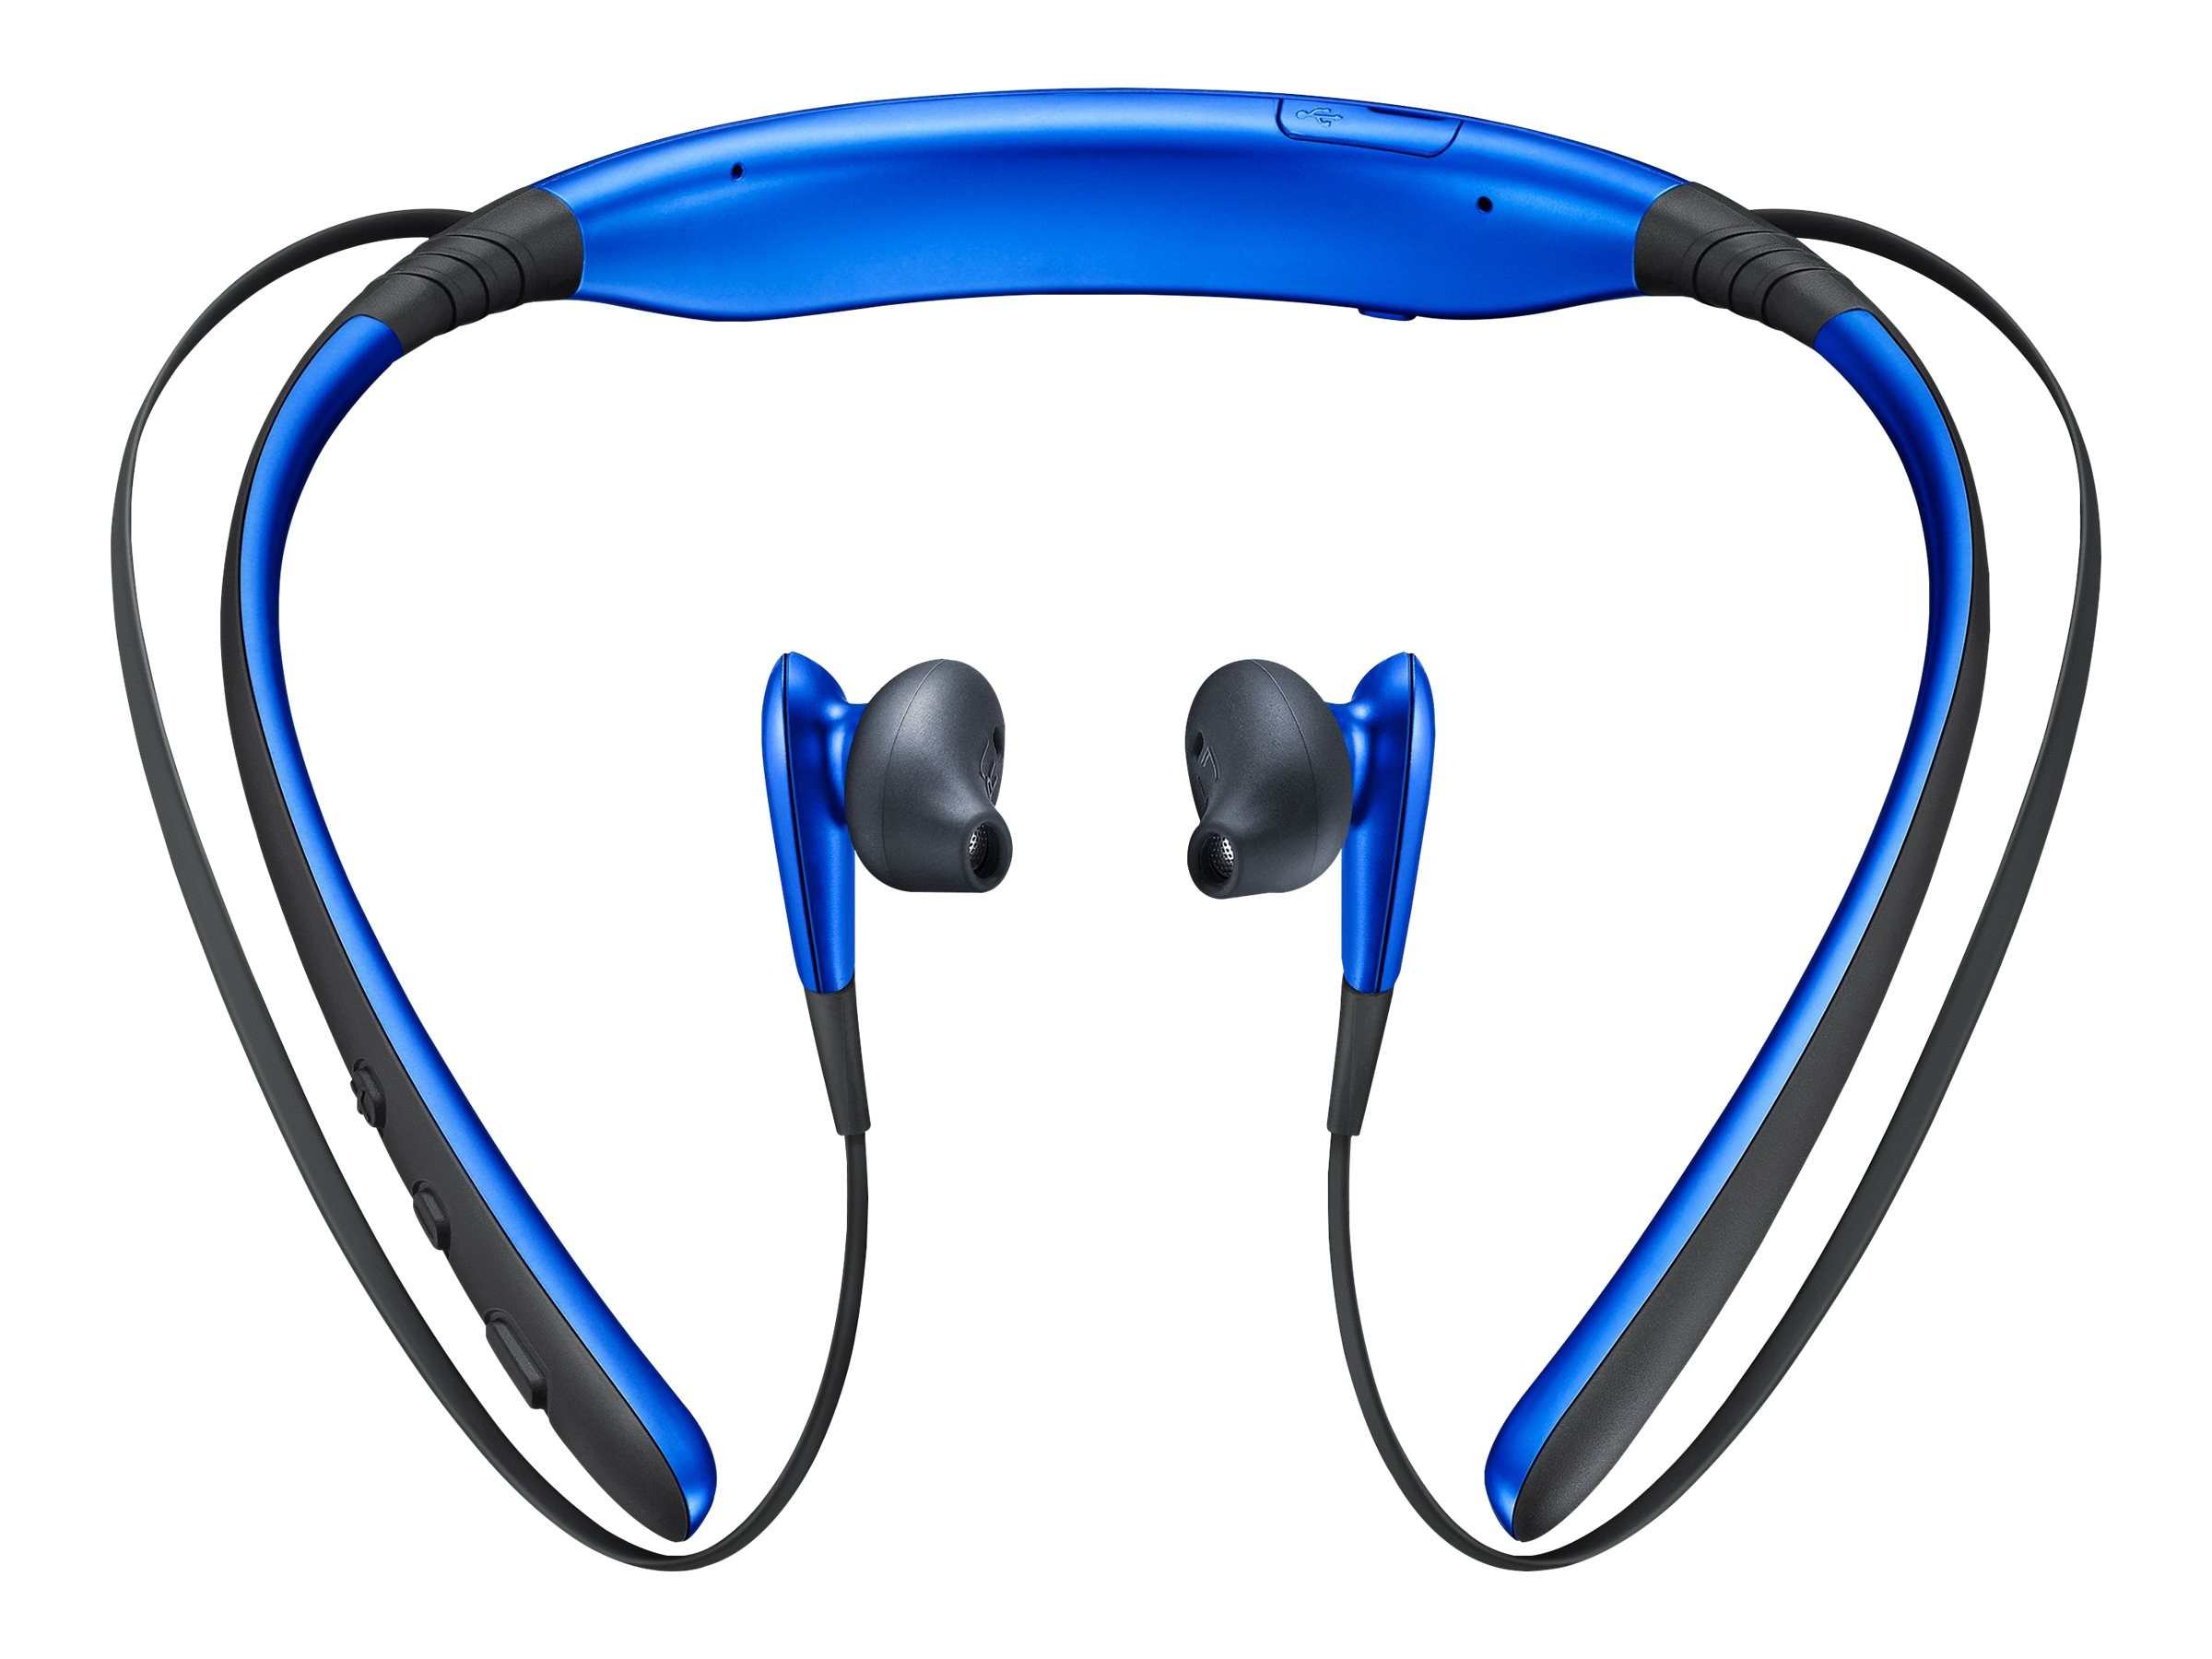 Samsung Level U Wireless Headphones - Blue, EO-BG920BLEBUS